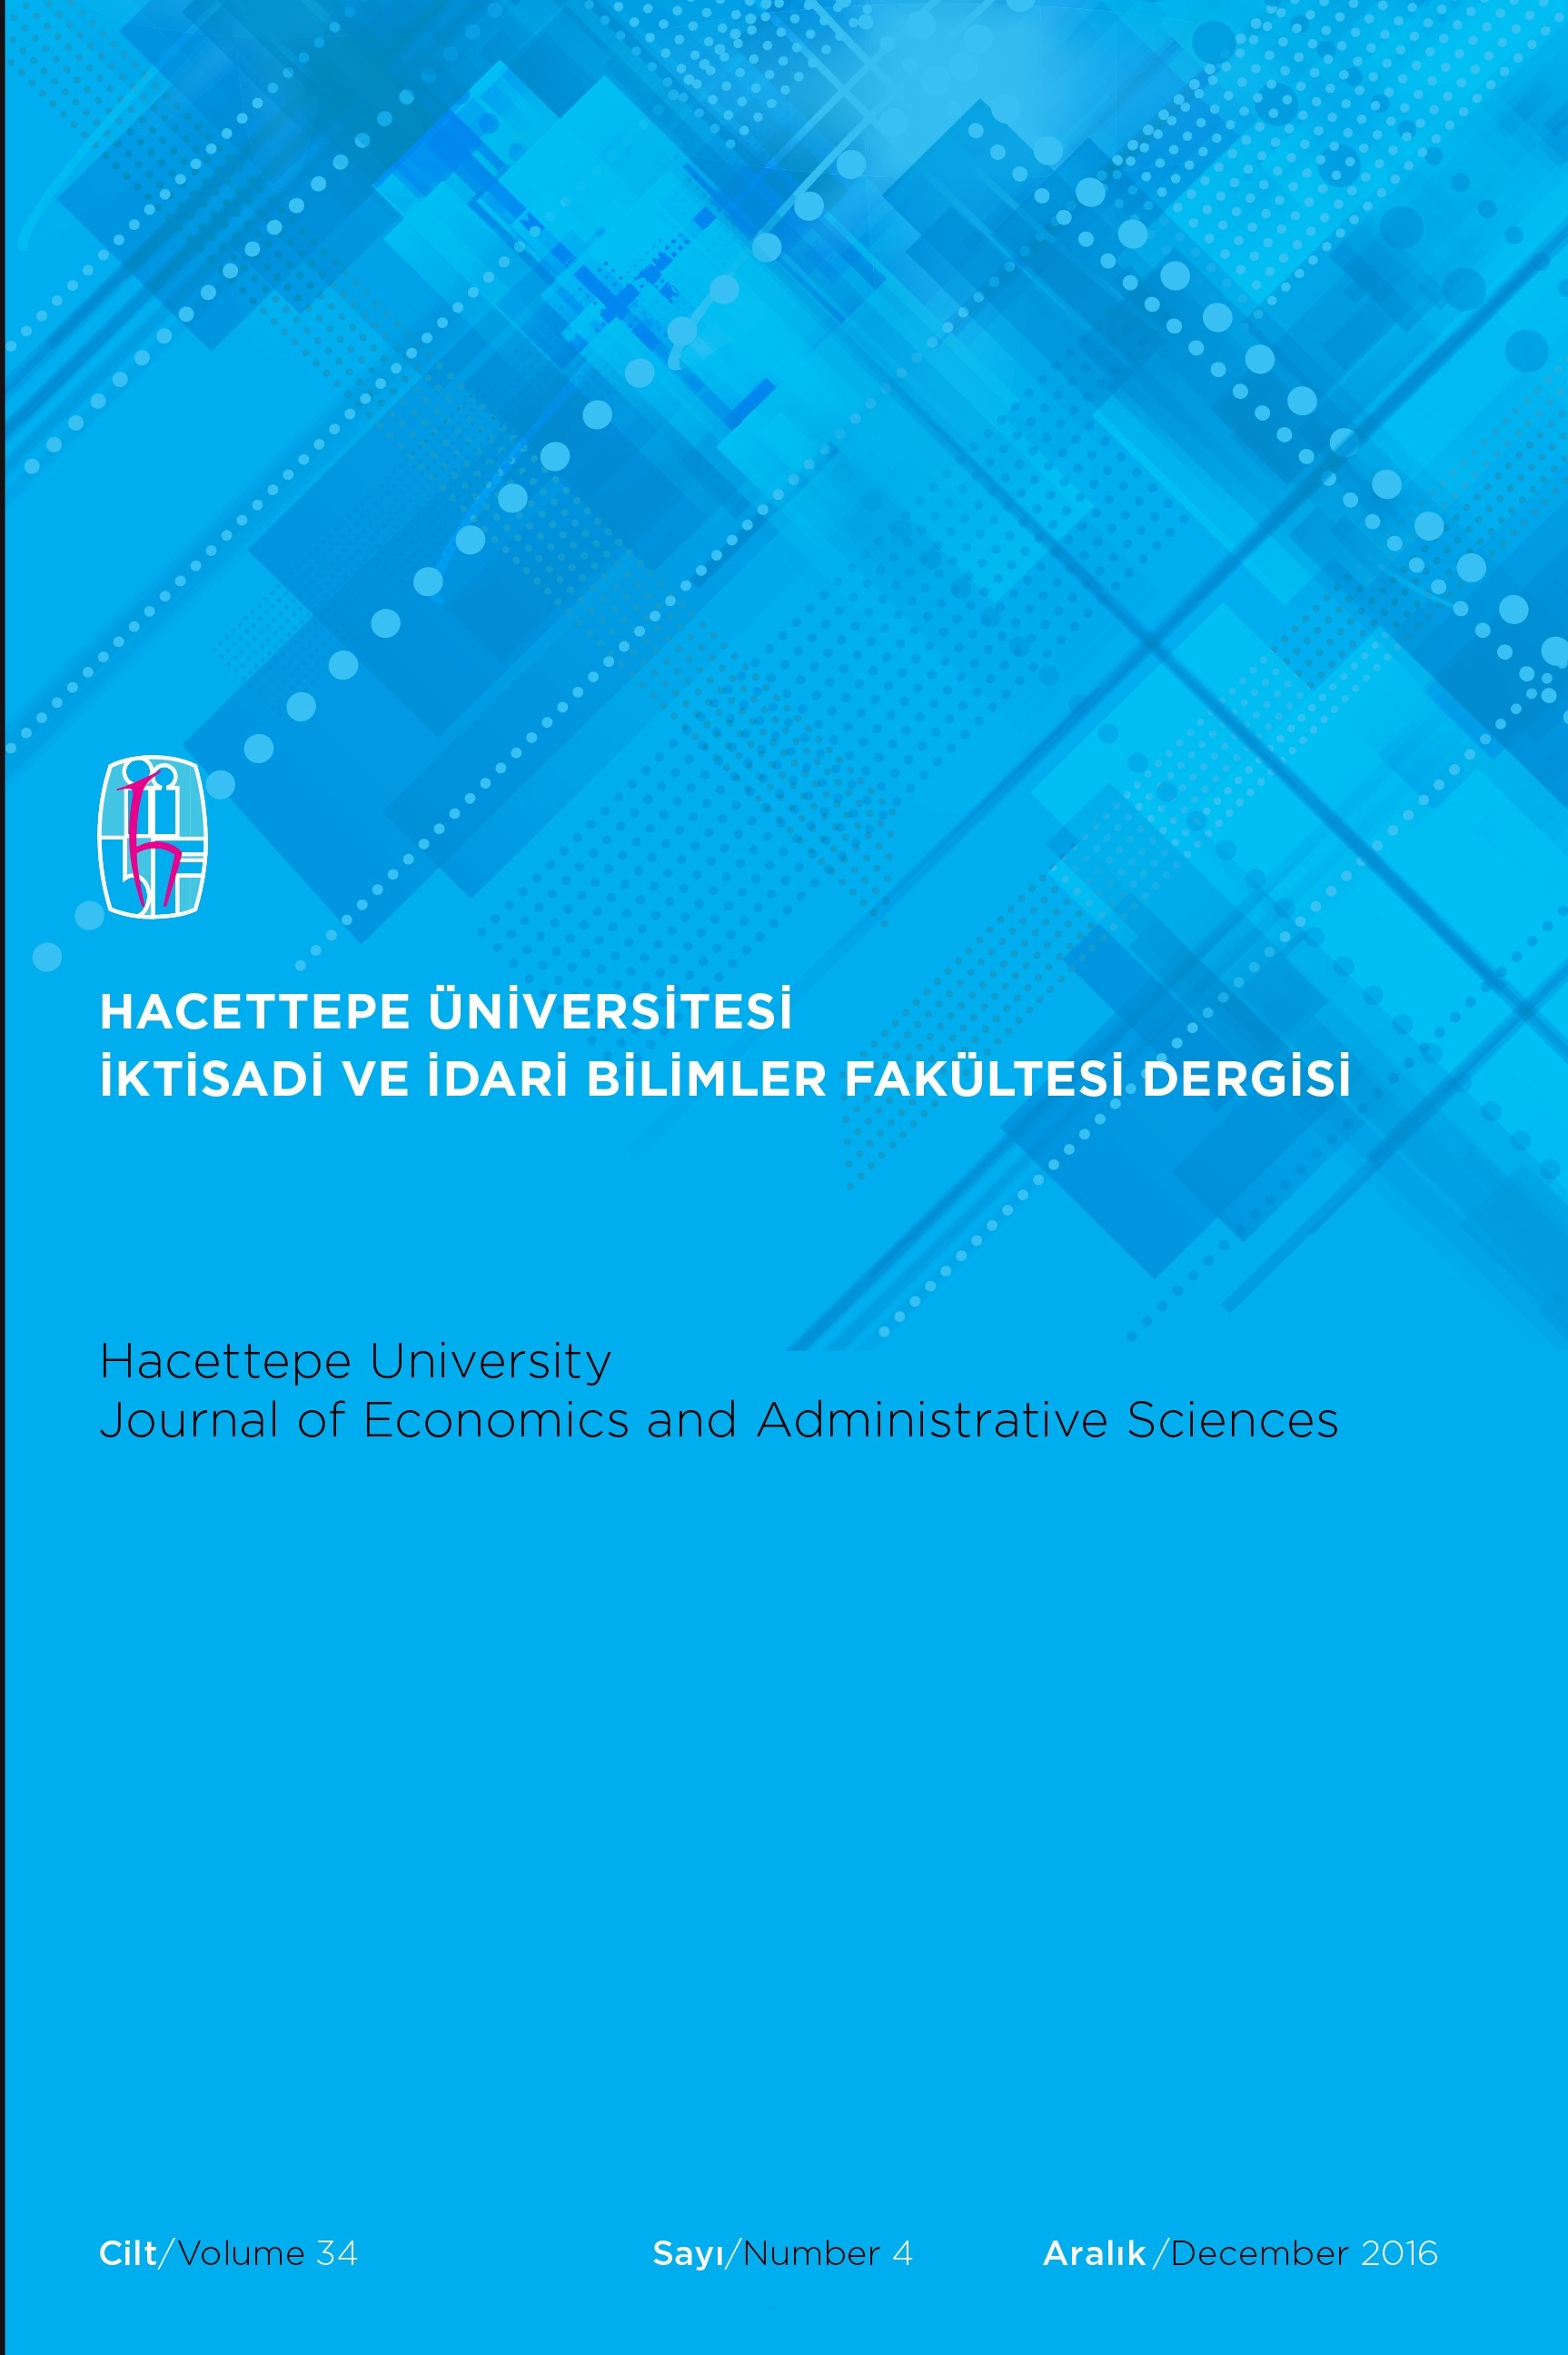 Hacettepe University Journal of Economics and Administrative Sciences